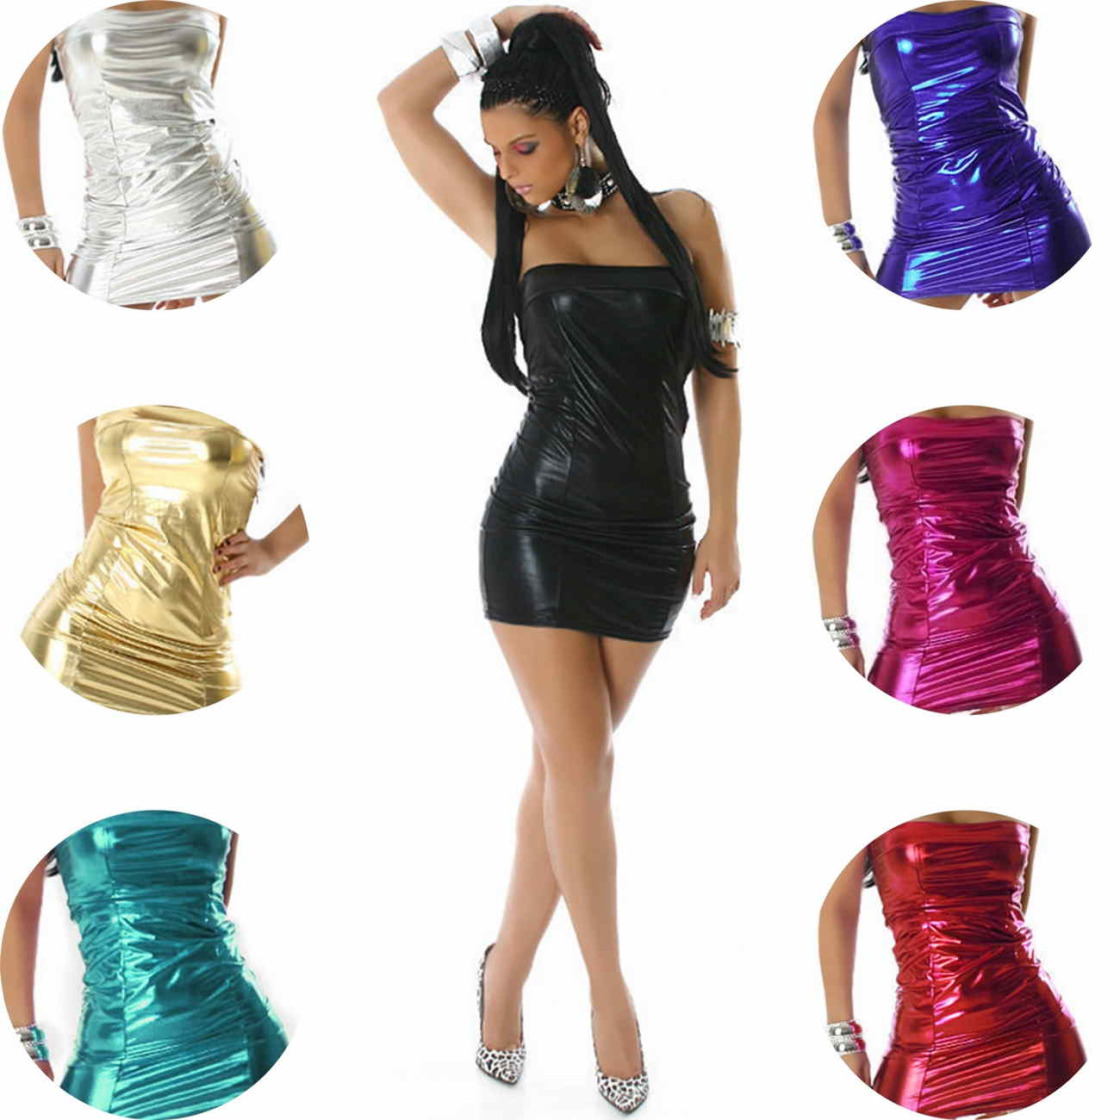 9fa0adddda19fa Jela London Damen Wetlook Bandeau Minikleid GoGo Glanz Metallic (34-38)